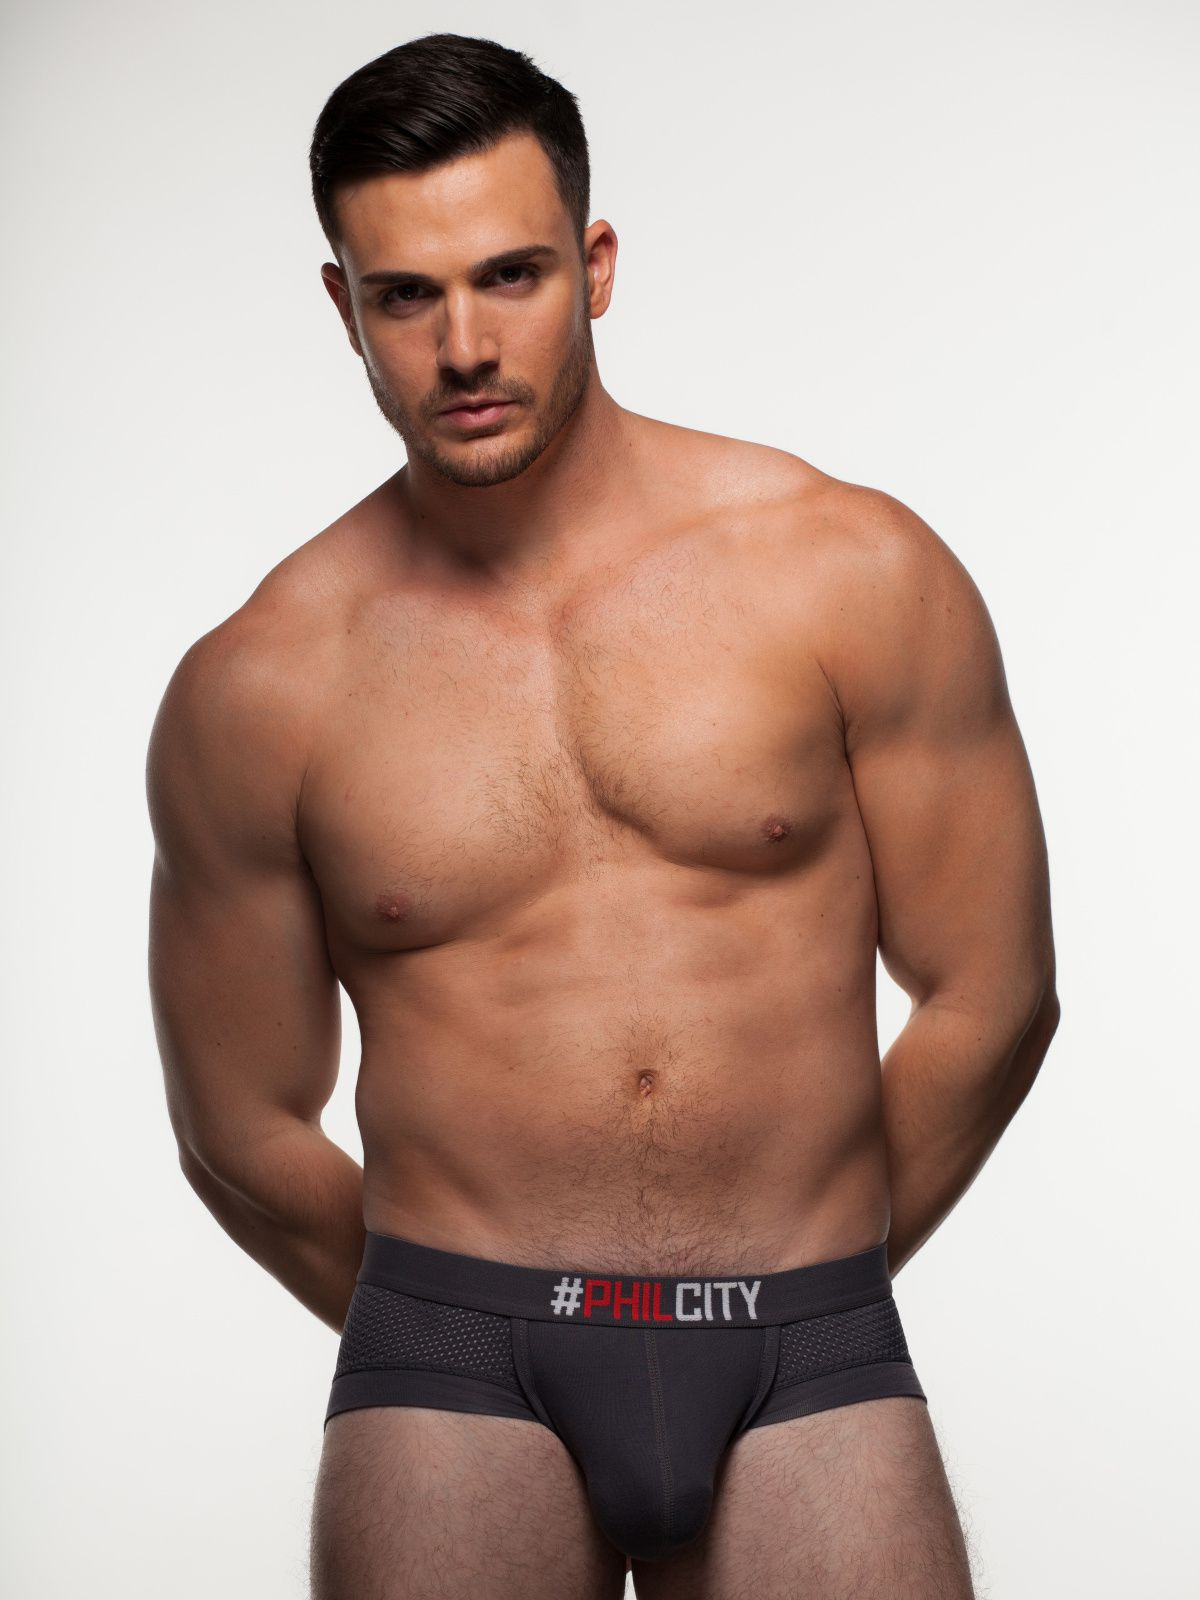 Philcity Underwear...